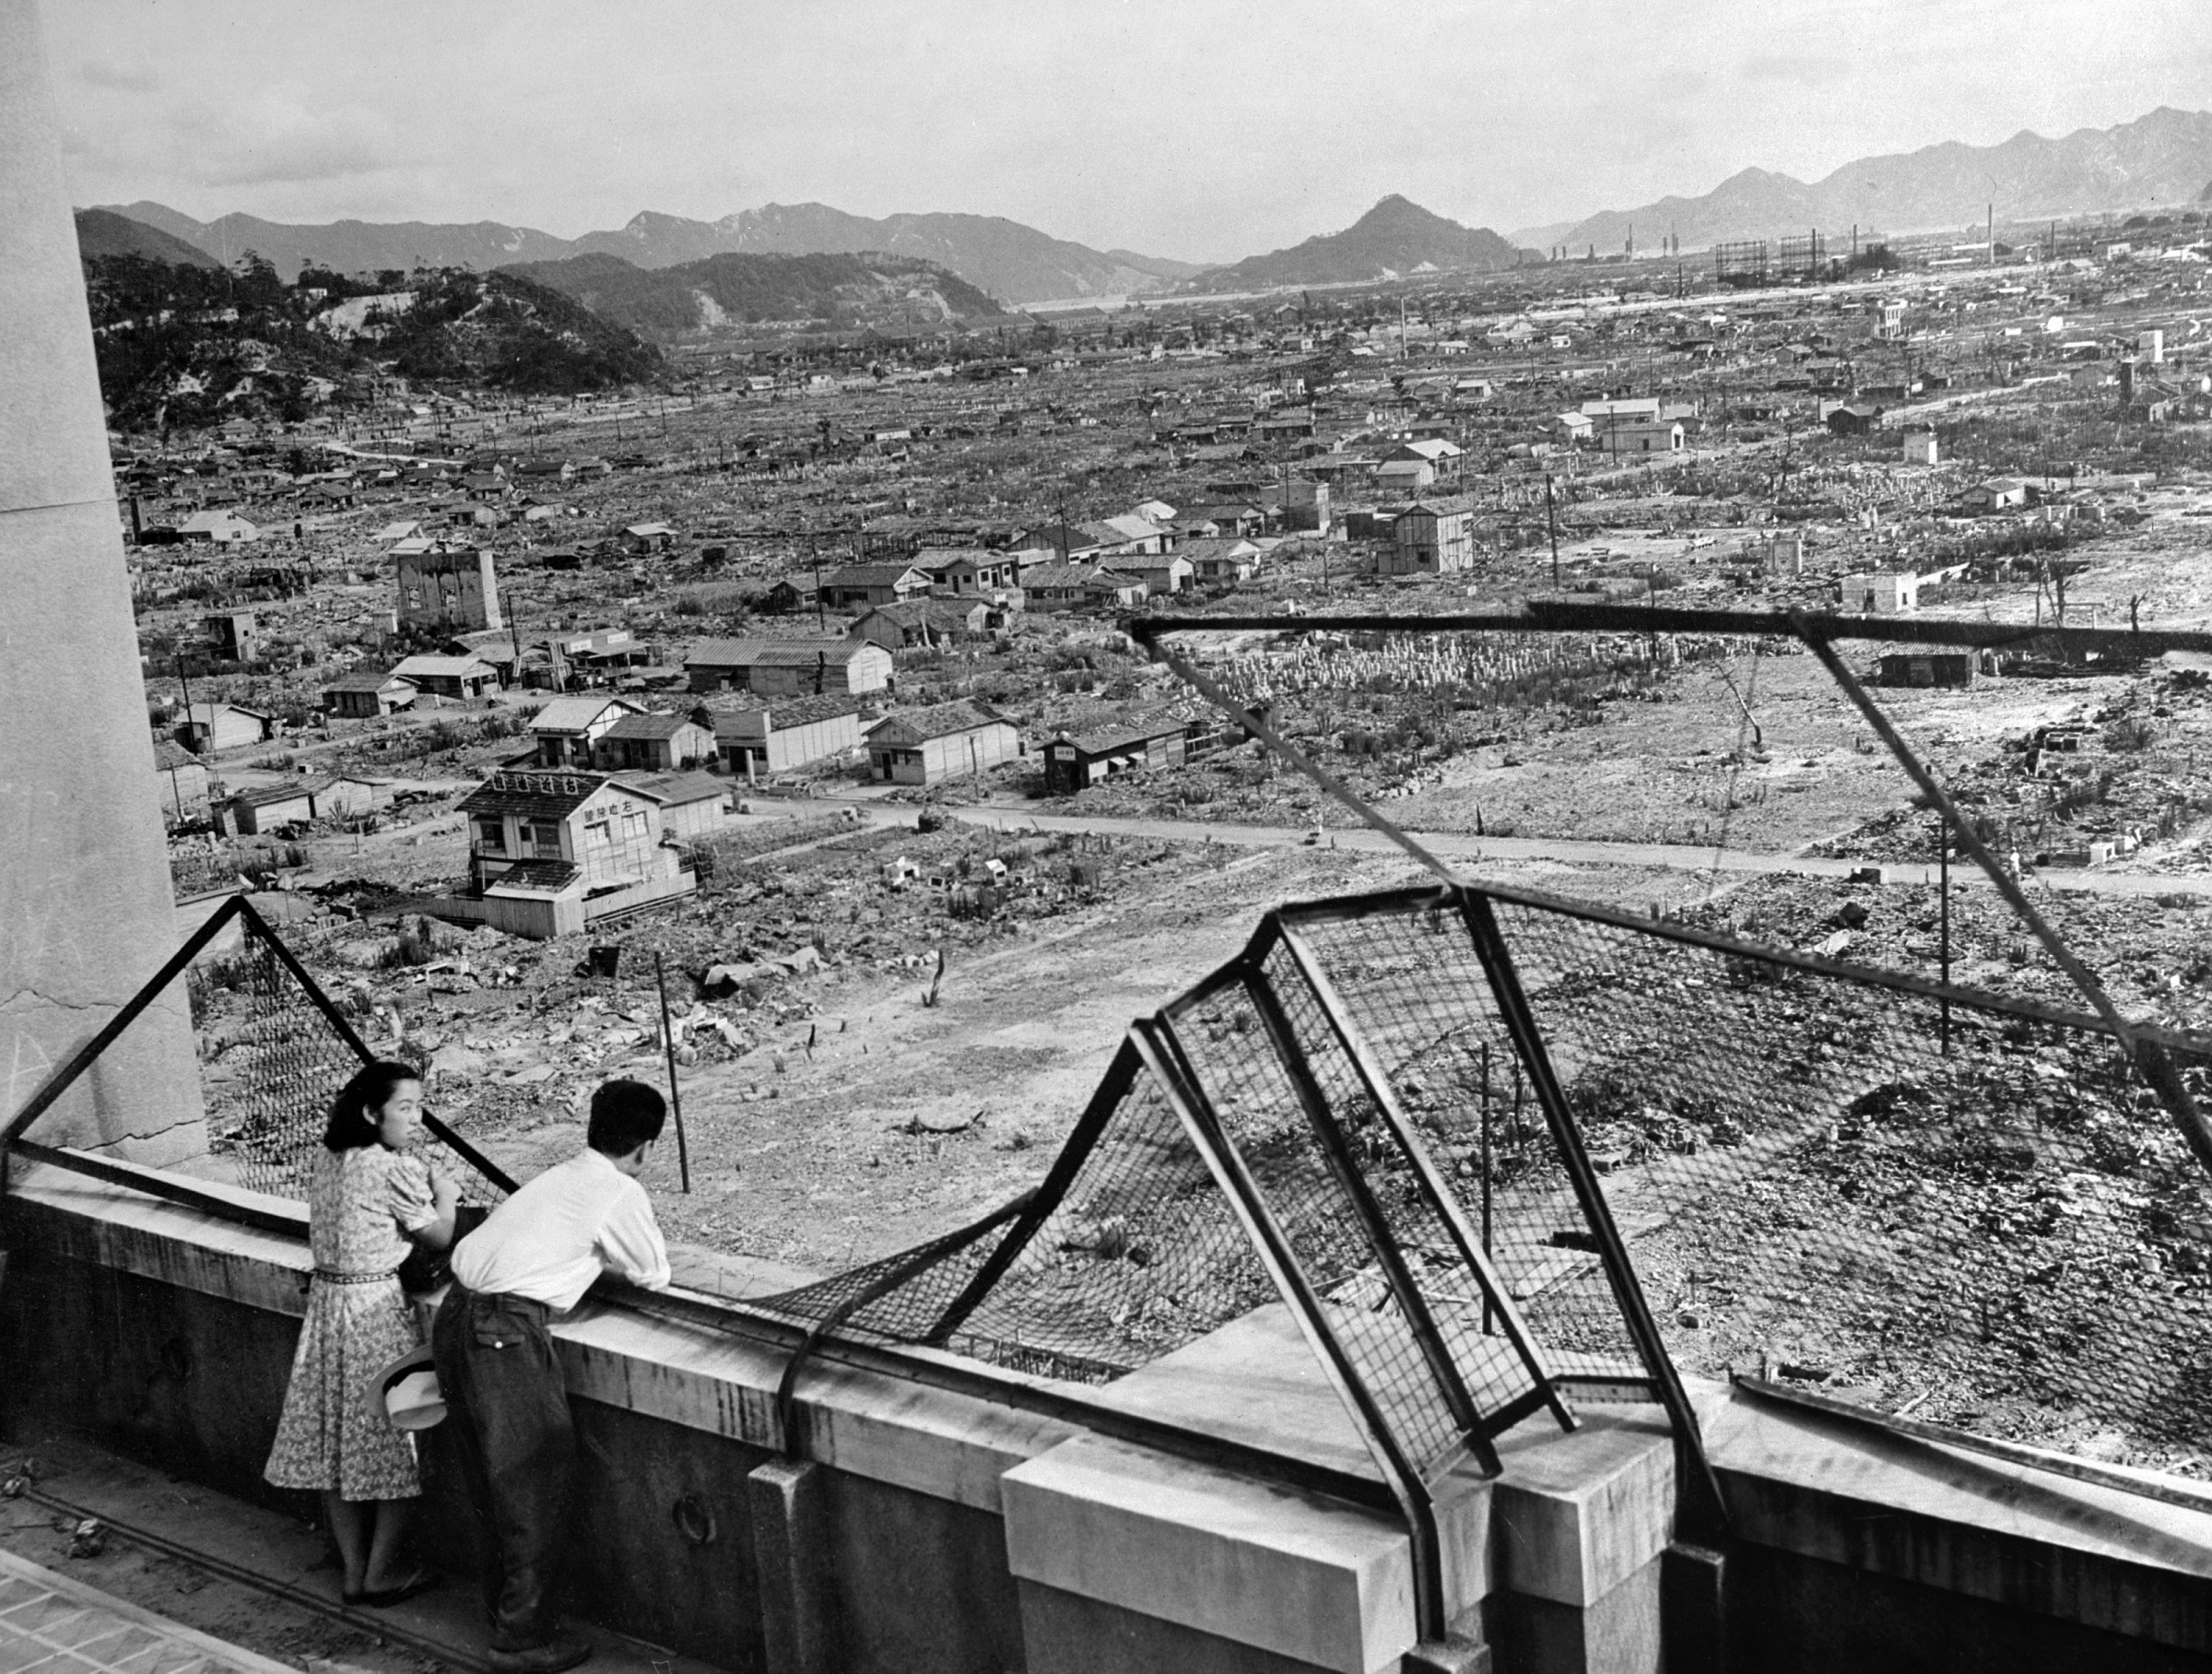 Picture showing the devastated city of Hiroshima following the US nuclear bombing